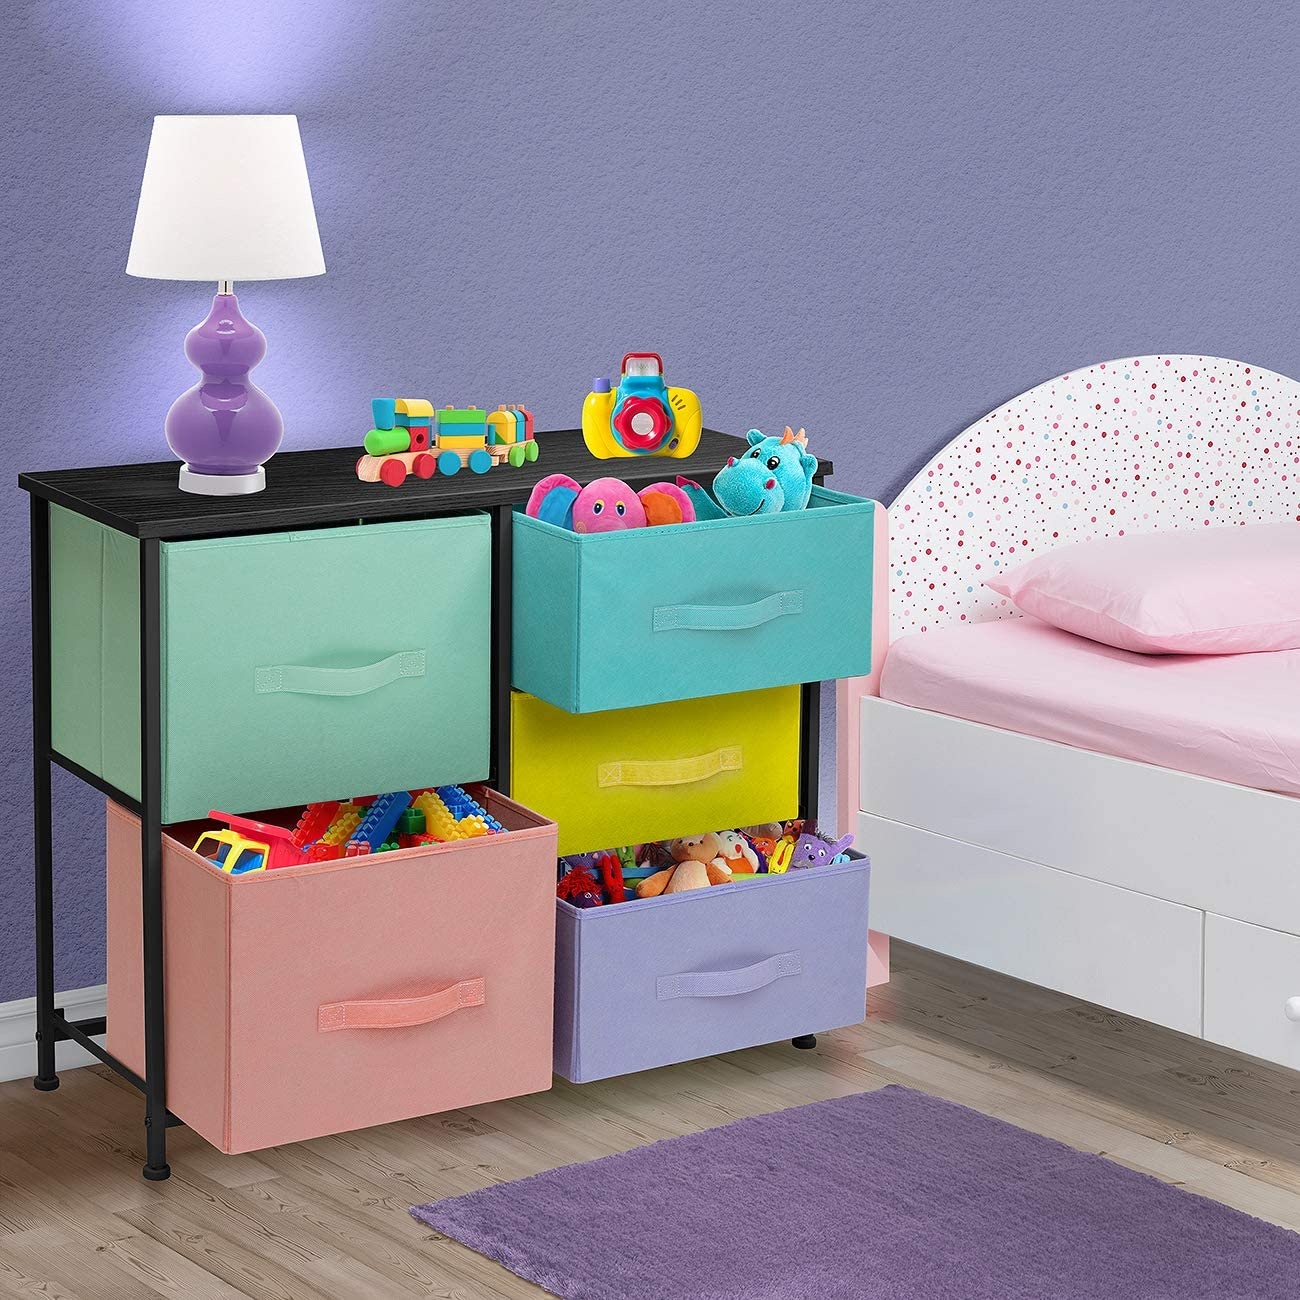 Closet Bedroom Clothes Furniture Storage Tower Chest for Kid/'s Teens Wood Top, Toy Organization Pastel//Black Nursery Sorbus Dresser with 5 Drawers Playroom Steel Frame